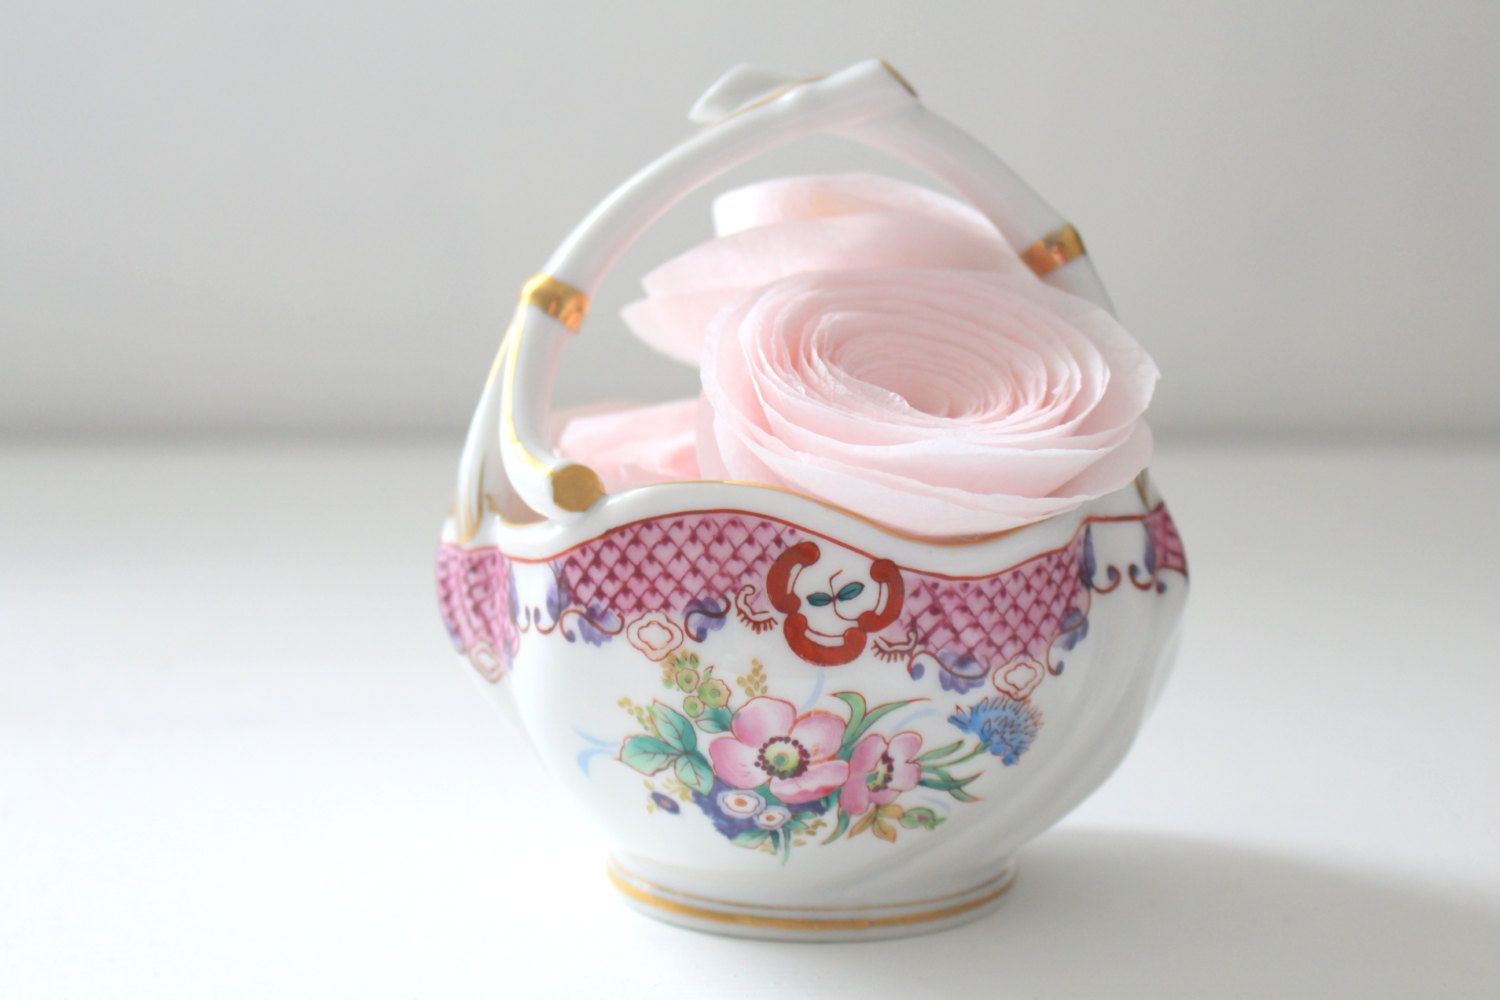 Vintage hinode japan porcelain basket gifts for her victorian style vintage hinode japan porcelain basket gifts for her victorian style home decor easter candy bowl by negle Gallery